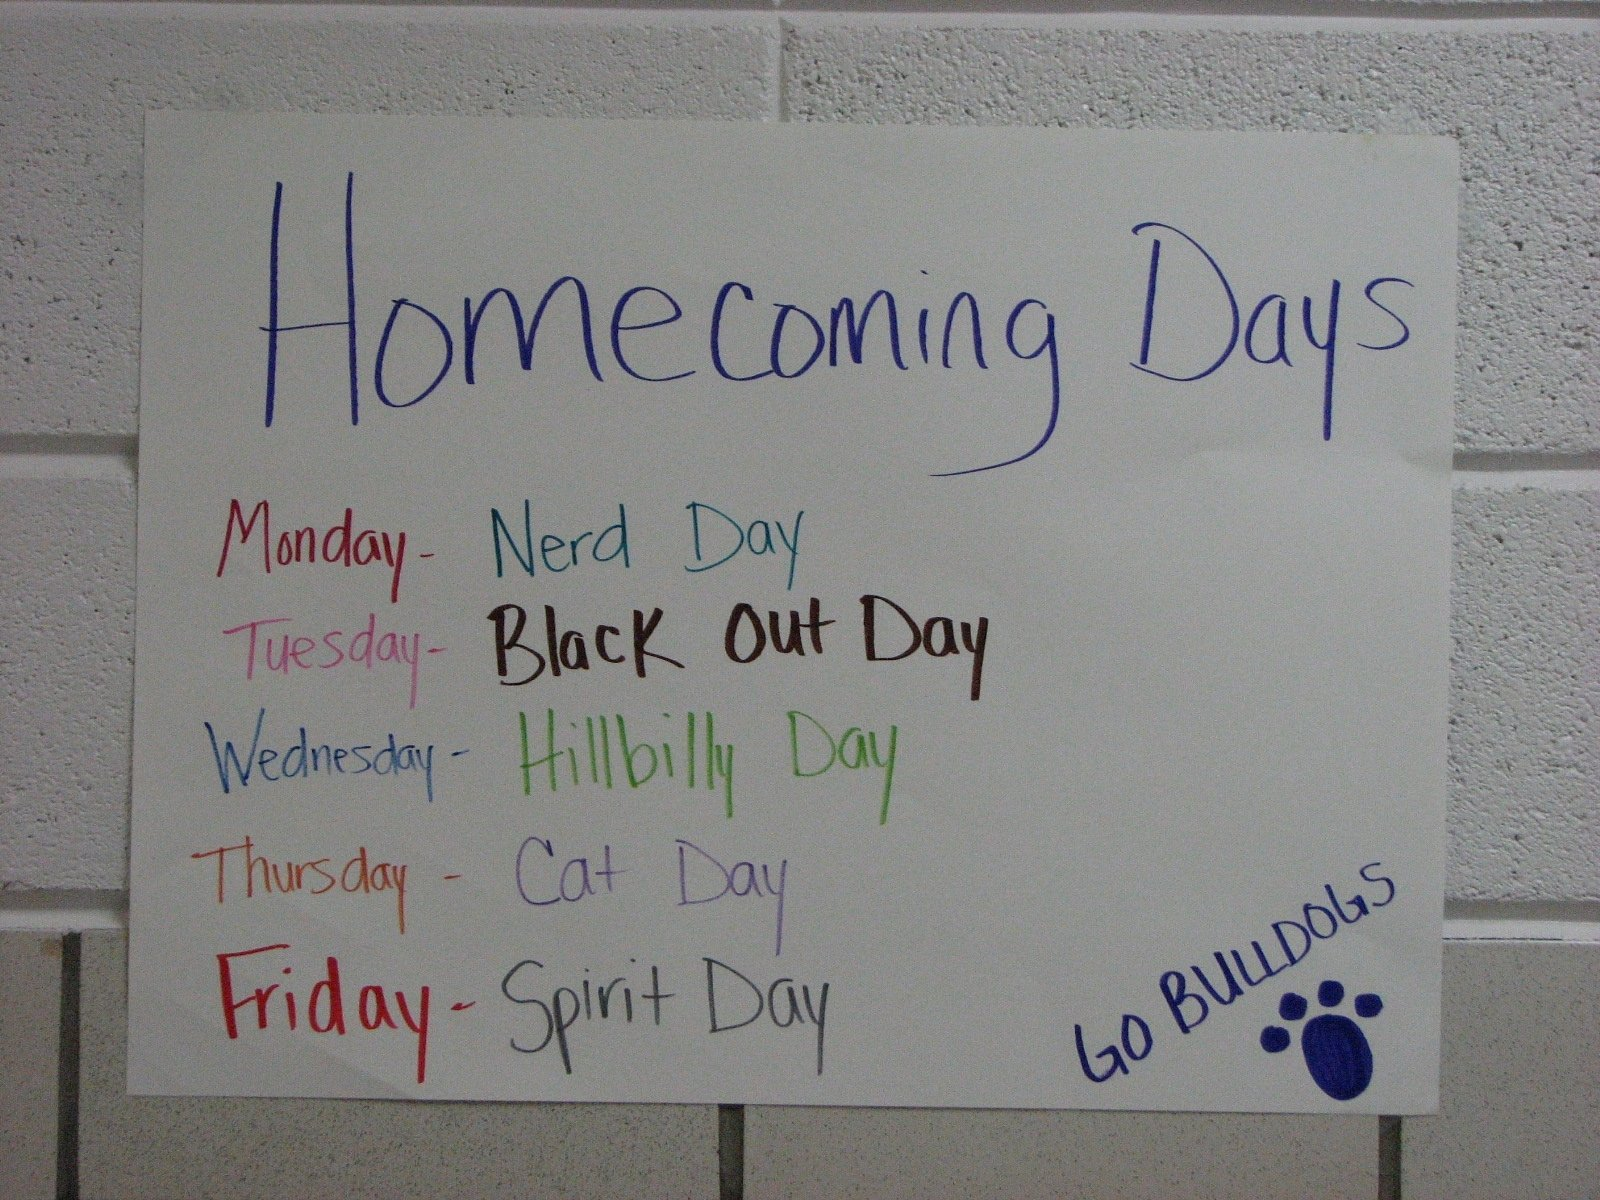 10 Cute Homecoming Dress Up Days Ideas mr mallorys stuff homecoming dress up days next week 2